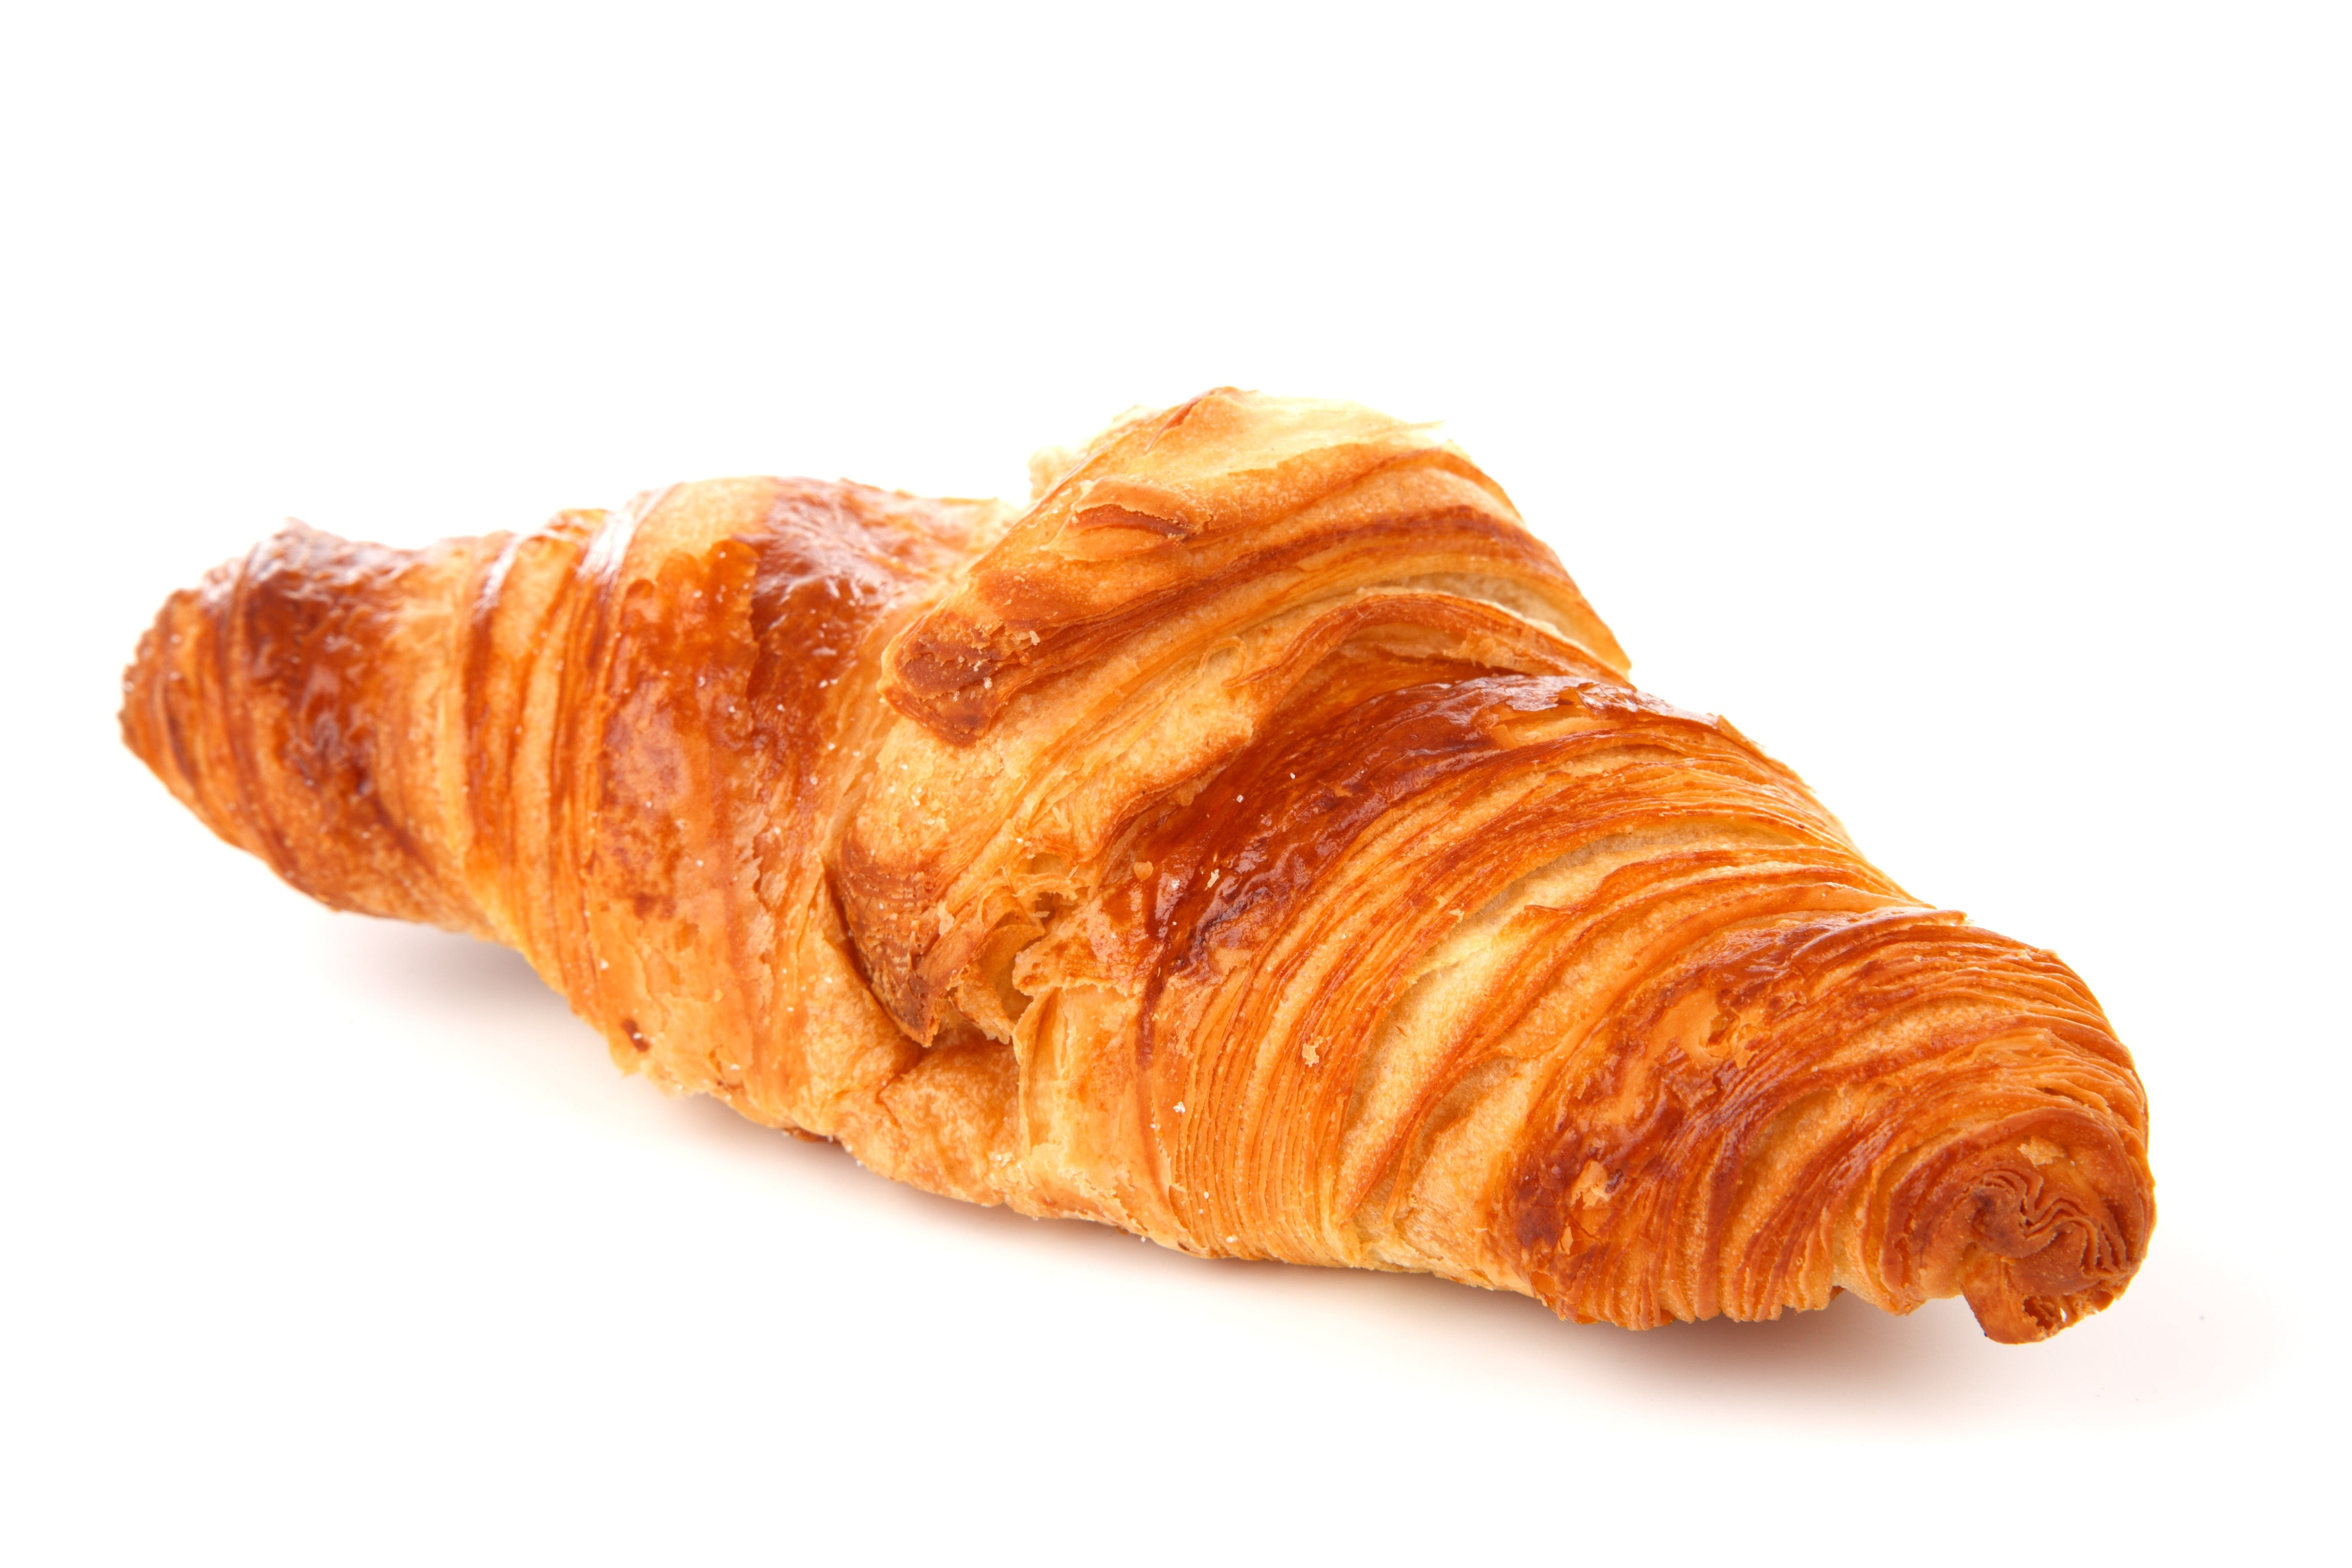 Croissant Bread on White Background